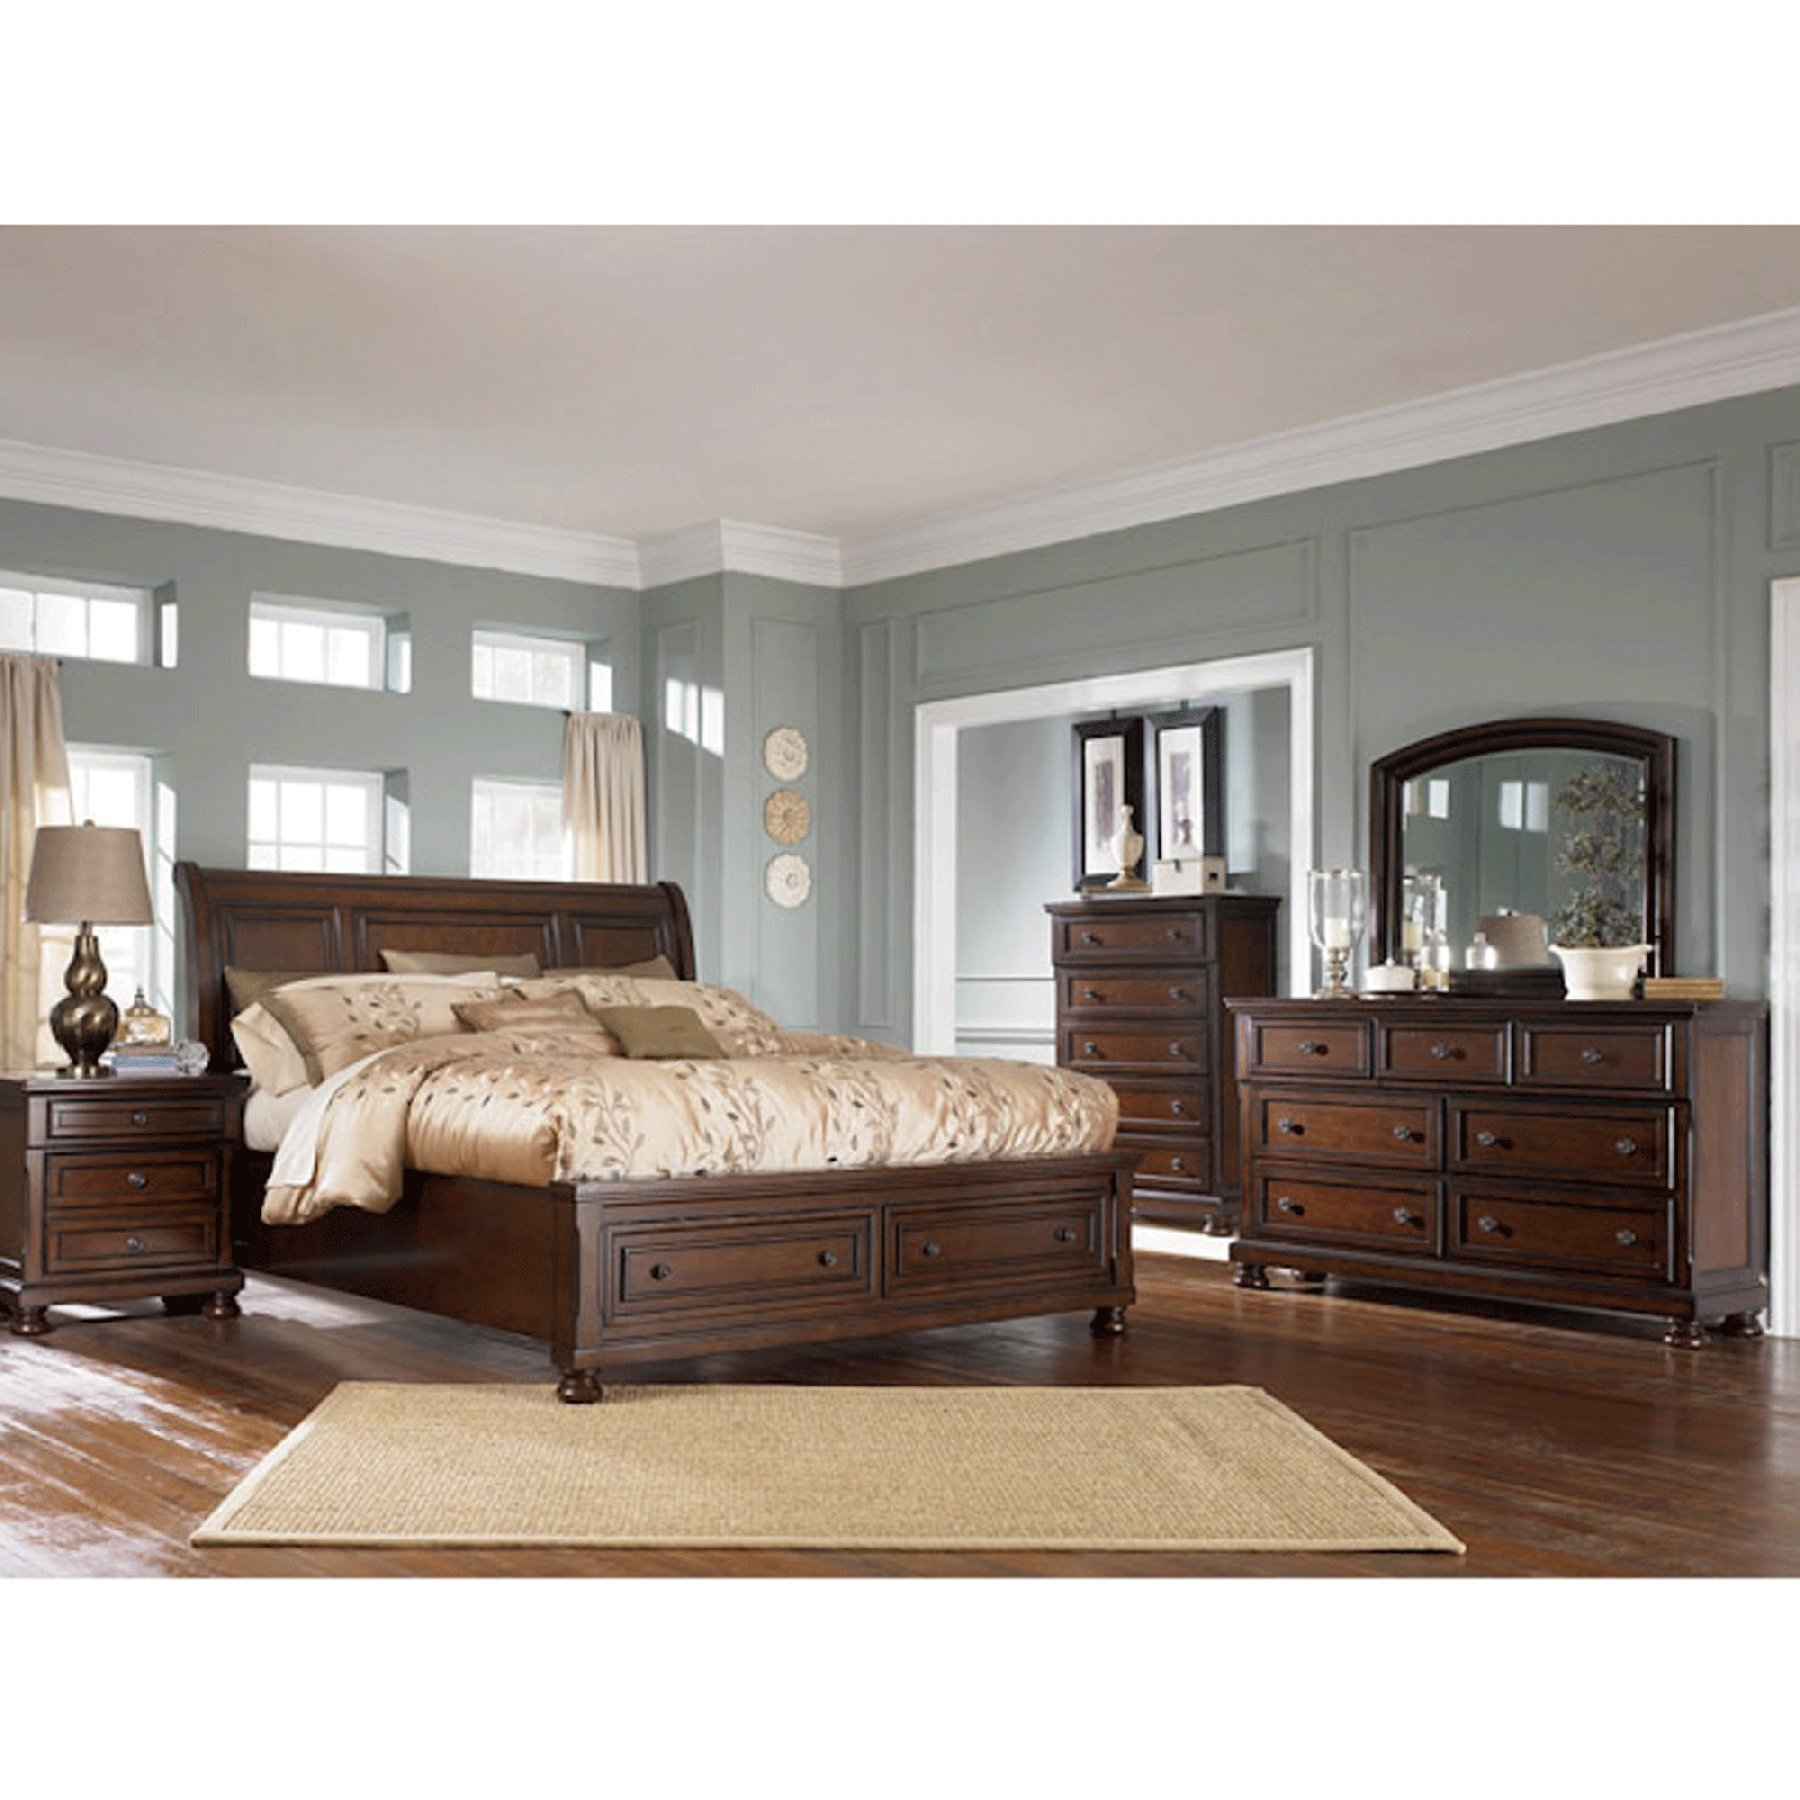 Best Oxford Storage Bed Wood Beds Bedroom Bernie Phyl's With Pictures